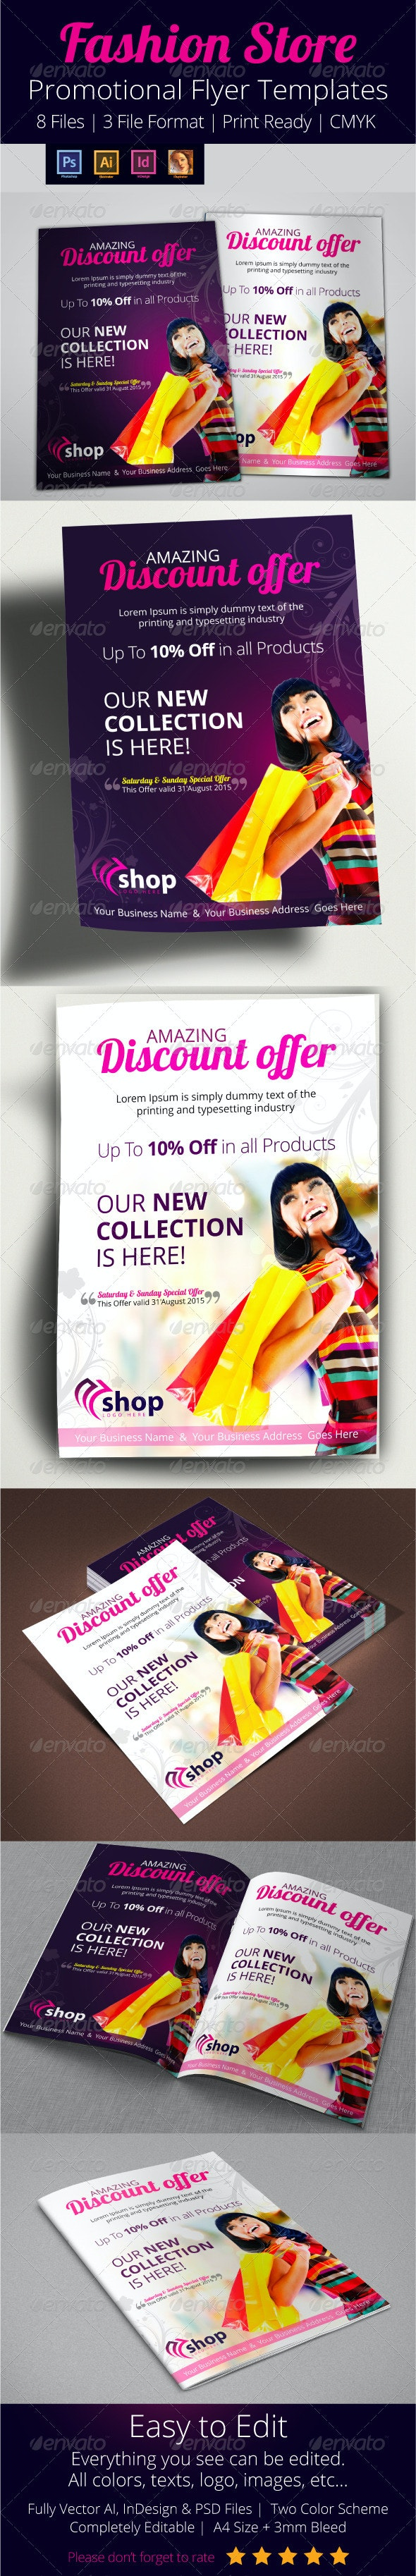 Fashion Store Promotional Flyer Template - Commerce Flyers